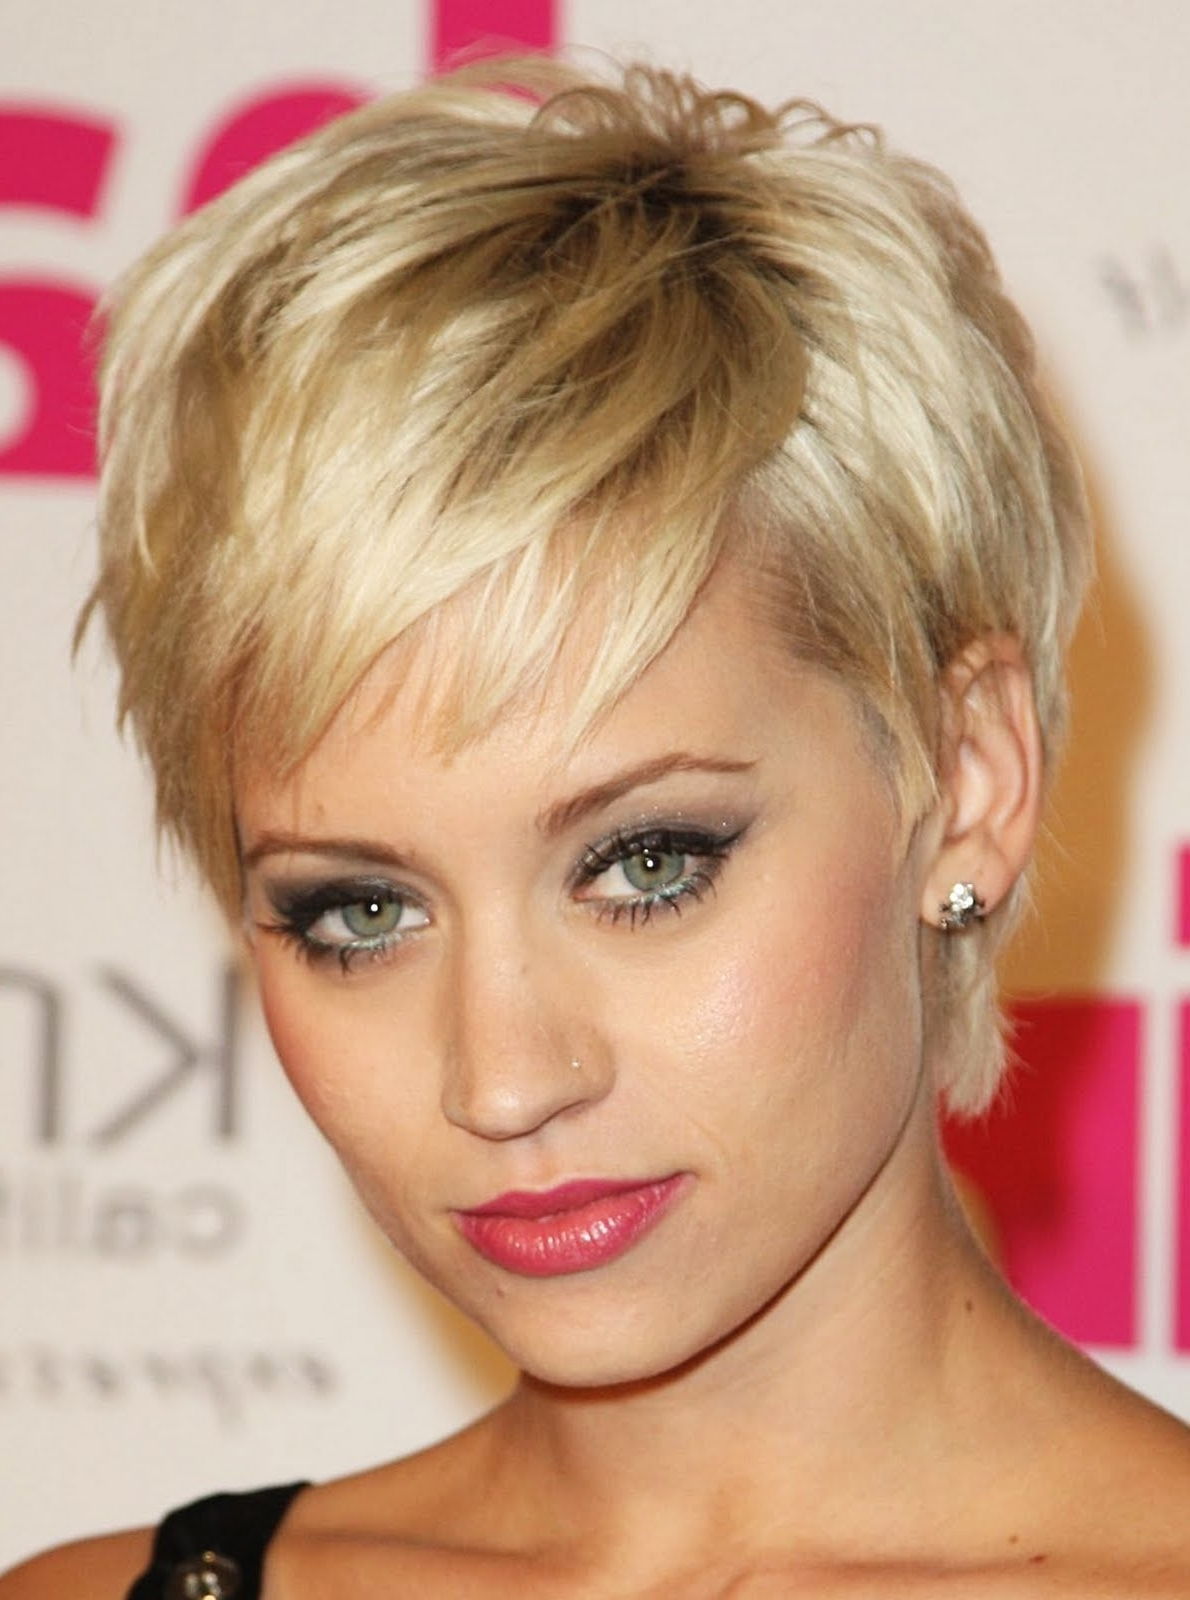 Pixie Hairstyles For Thin Fine Hair – Hairstyles Ideas Regarding Most Popular Pixie Hairstyles For Fine Thin Hair (View 14 of 15)